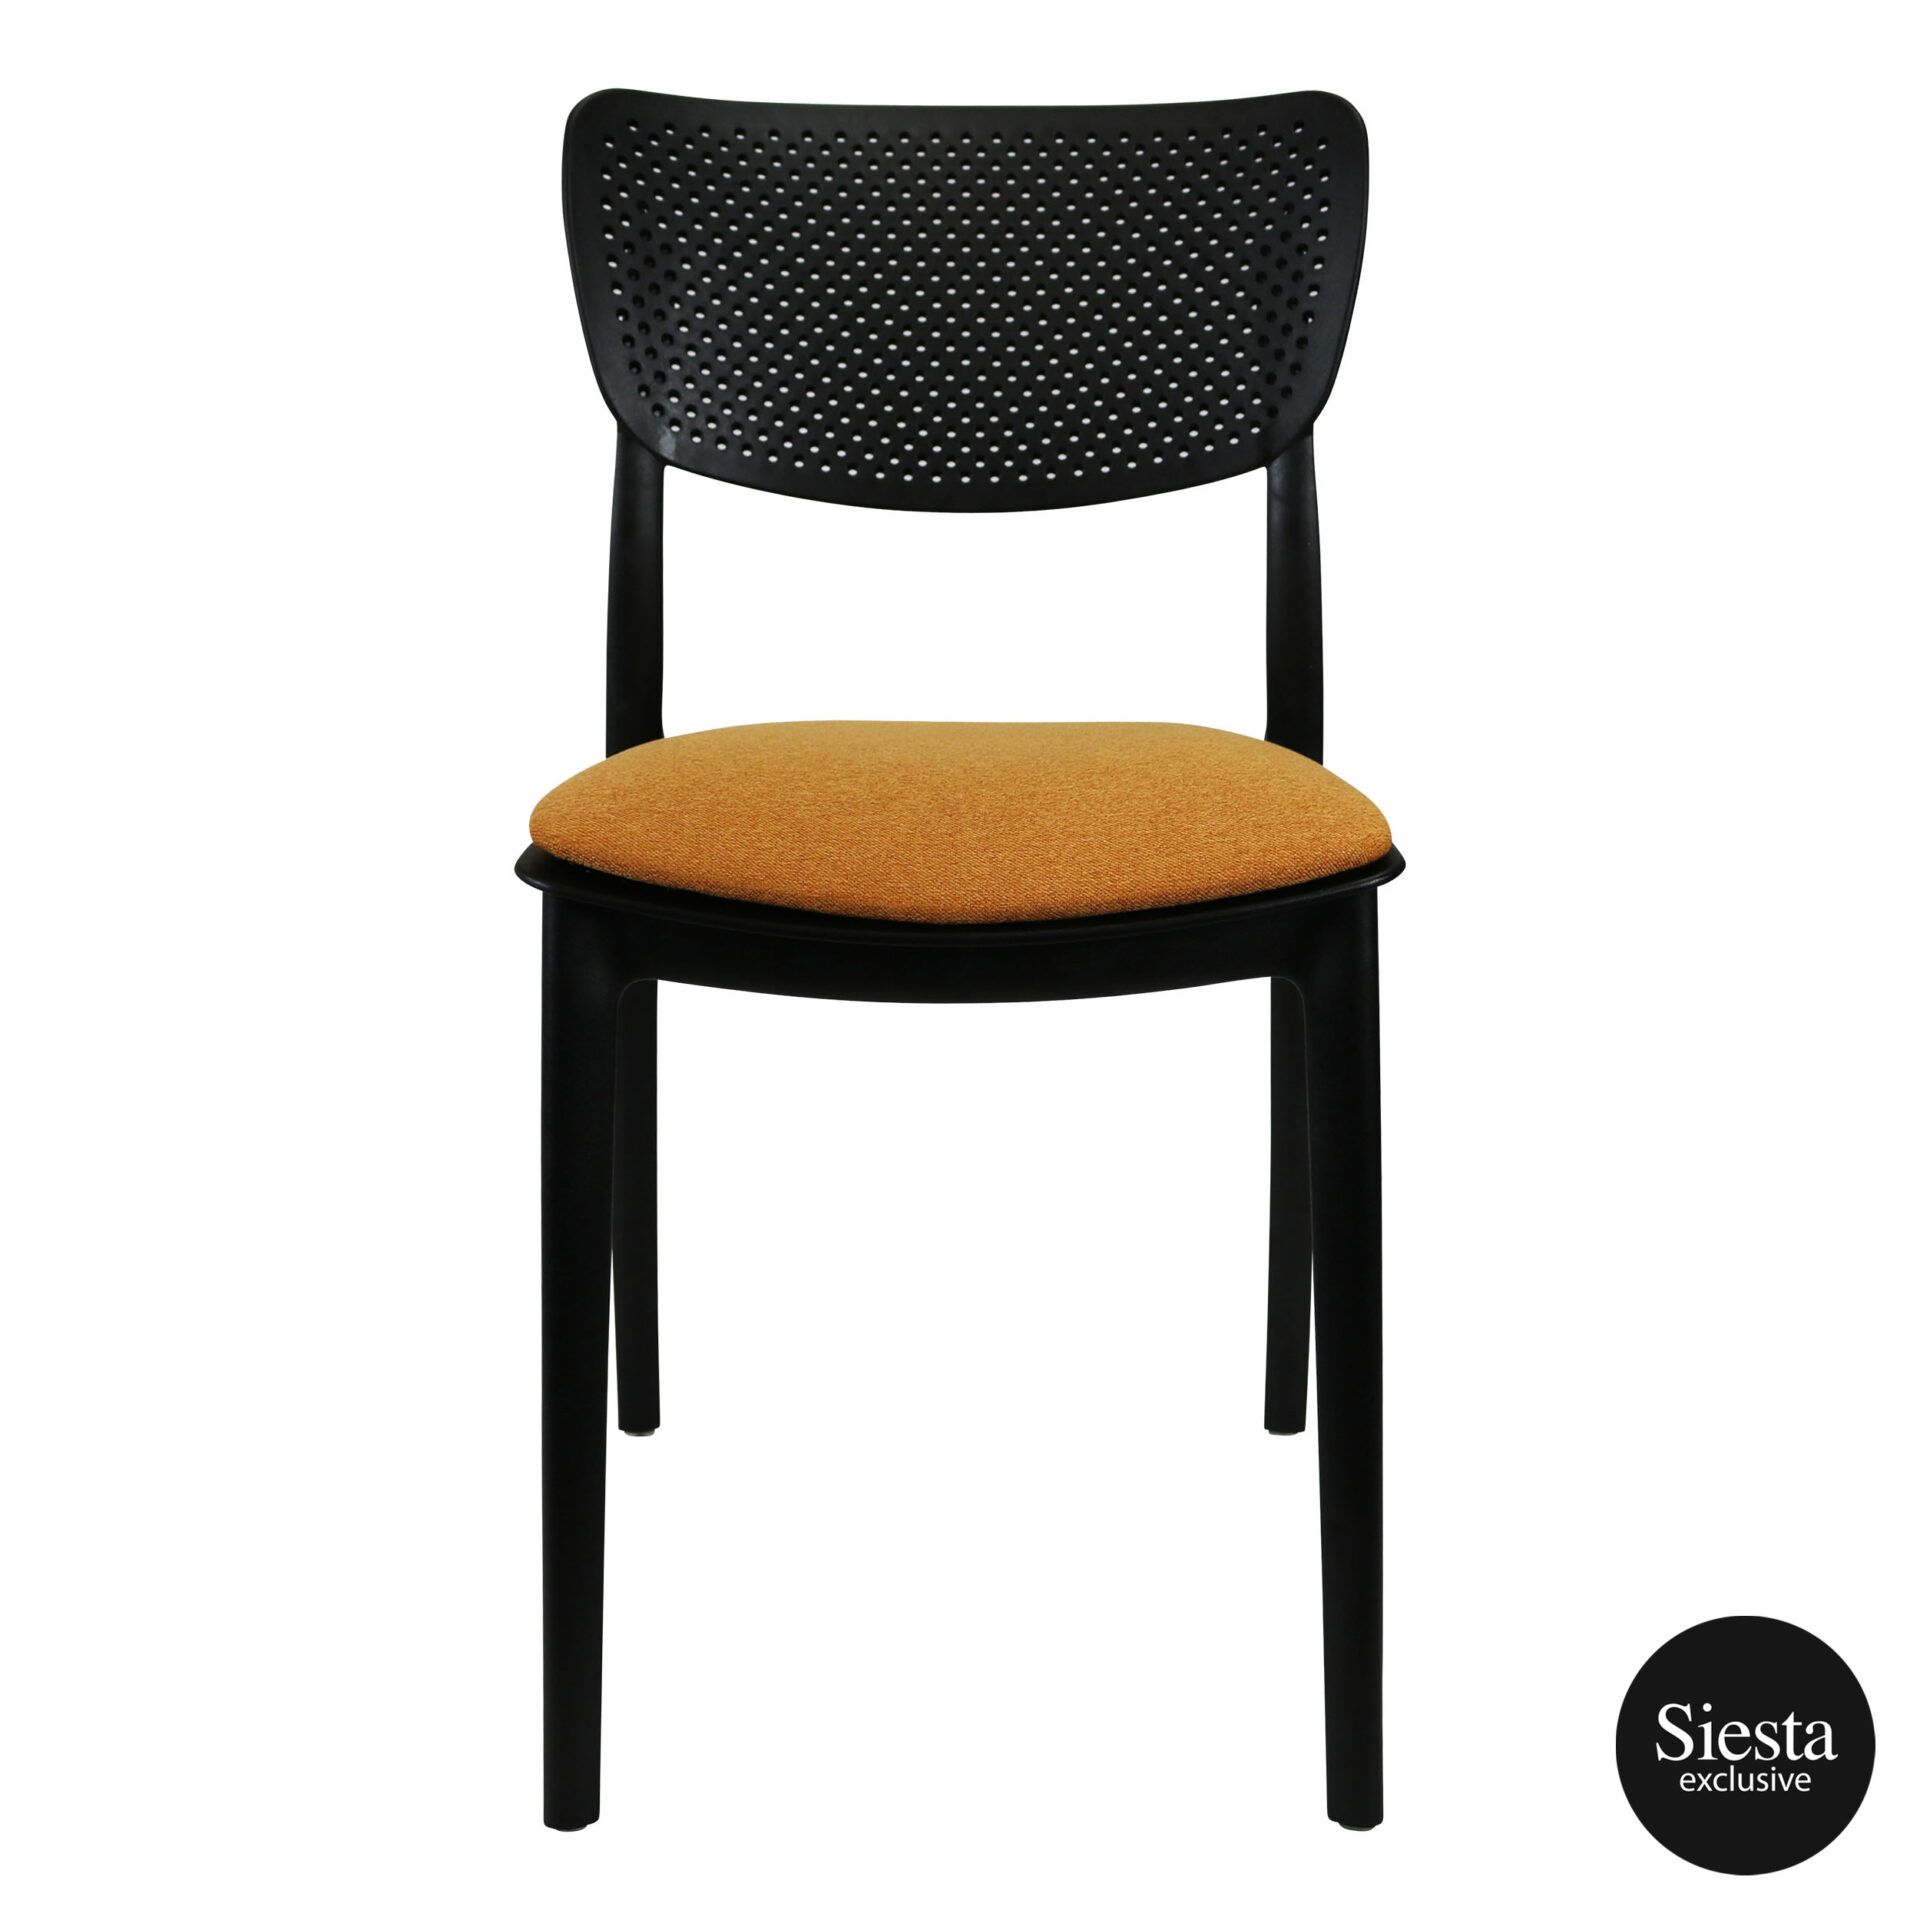 lucy chair black c7